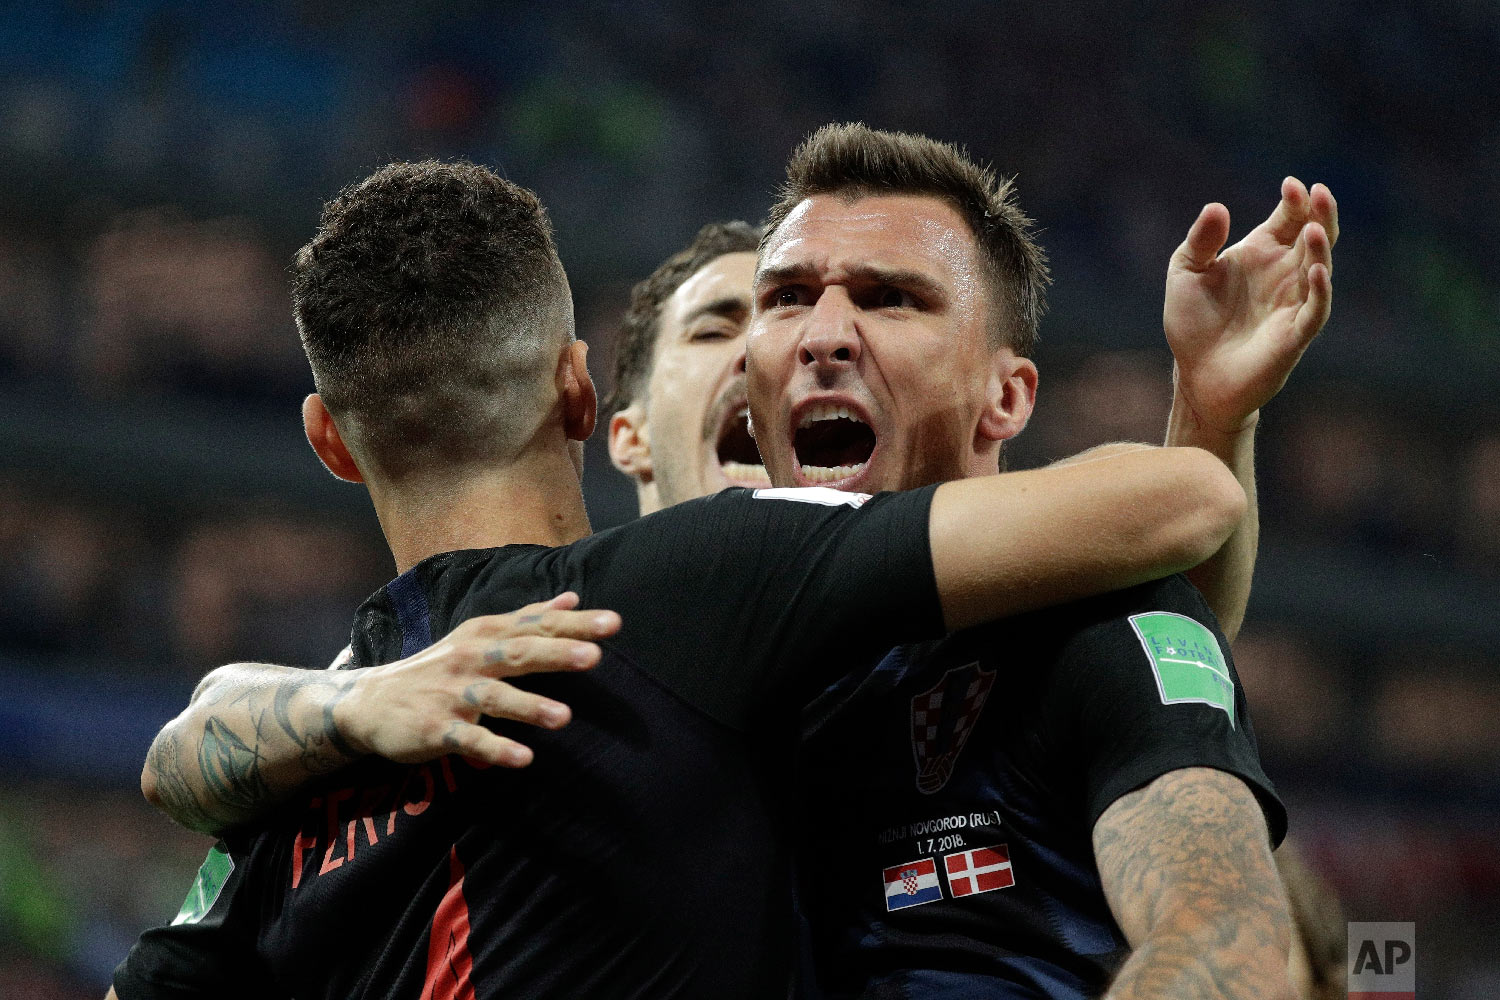 Croatia's Mario Mandzukic, right, celebrates with his teammates after scoring the opening goal of his team during the round of 16 match between Croatia and Denmark at the 2018 soccer World Cup in the Nizhny Novgorod Stadium, in Nizhny Novgorod, Russia, Saturday, July 1, 2018. (AP Photo/Gregorio Borgia)